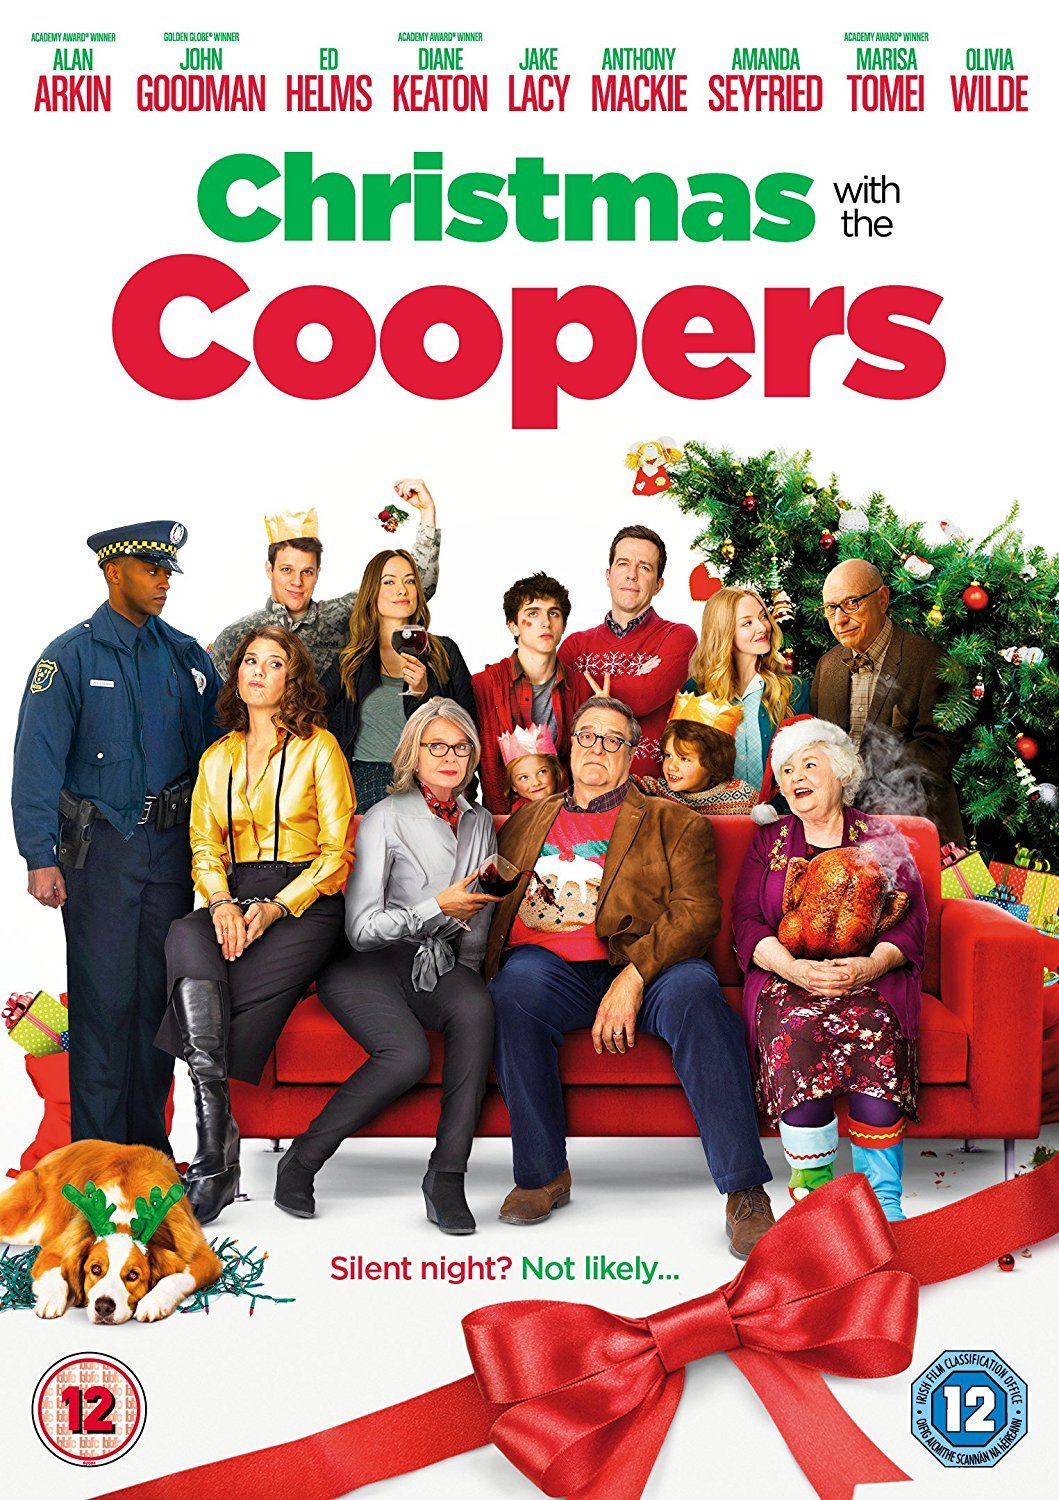 Christmas With The Coopers [DVD]: Amazon.co.uk: John Goodman, Diane ...